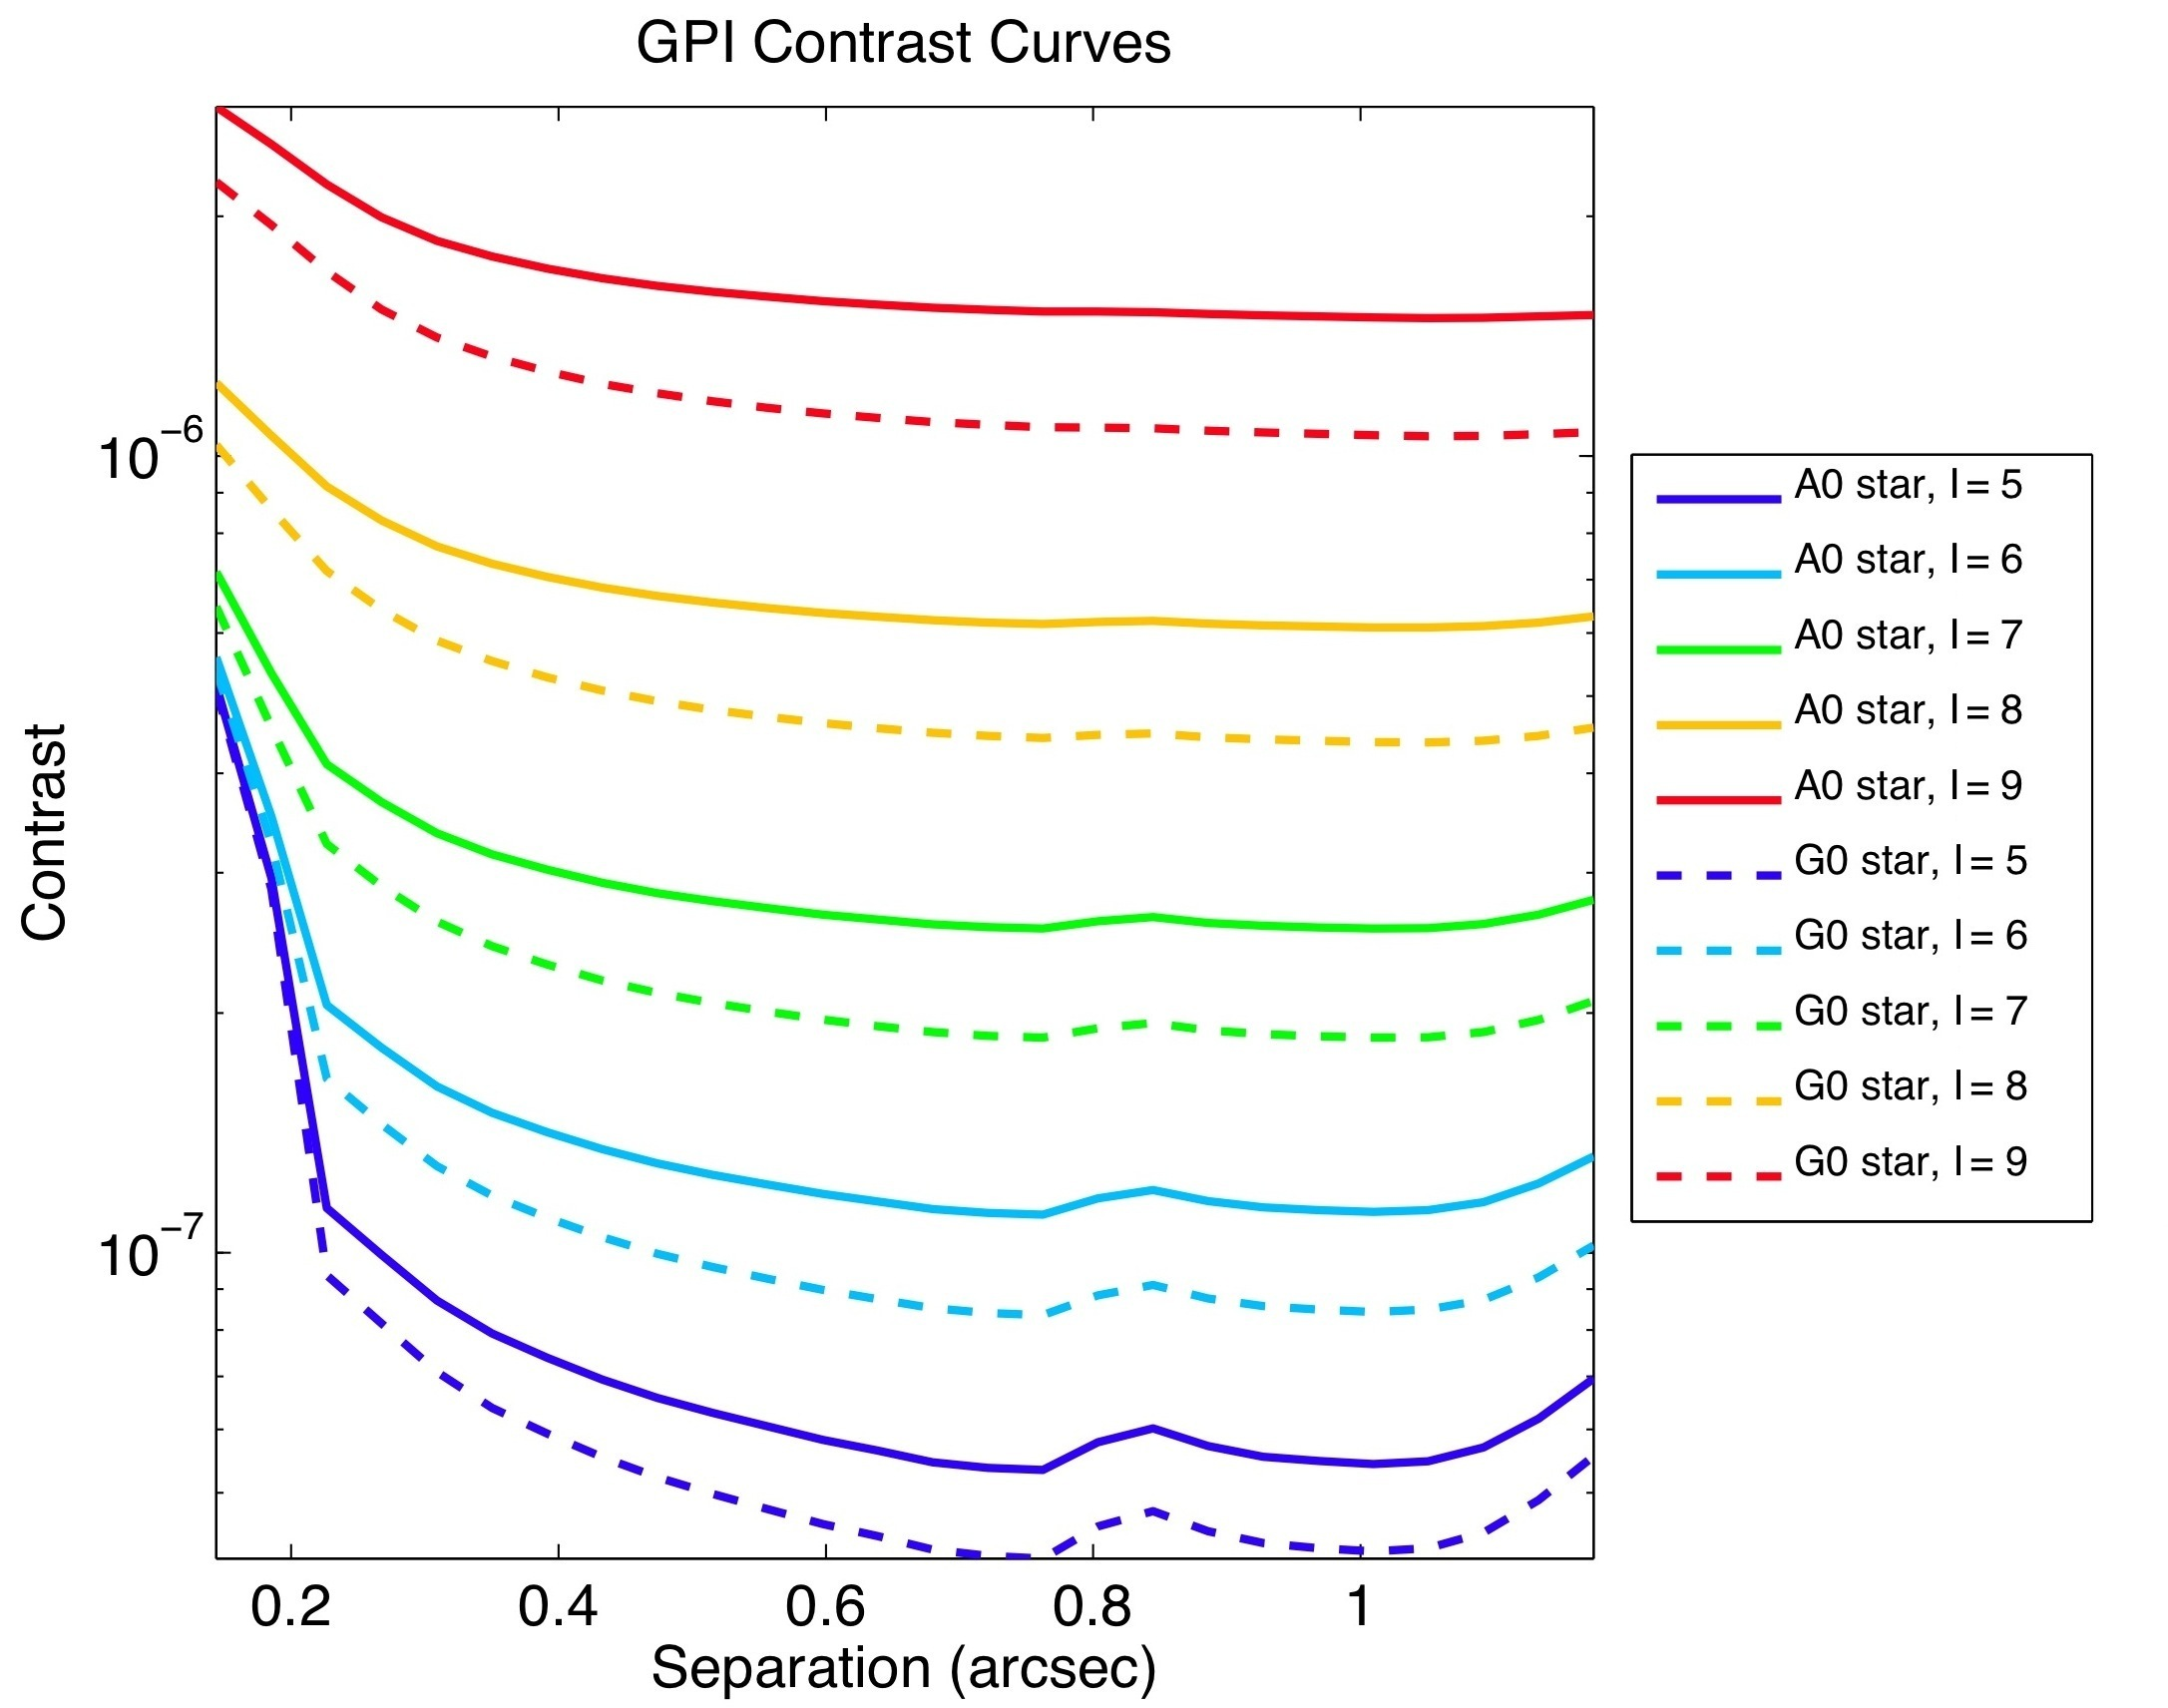 contrast curves for GPI on Gemini